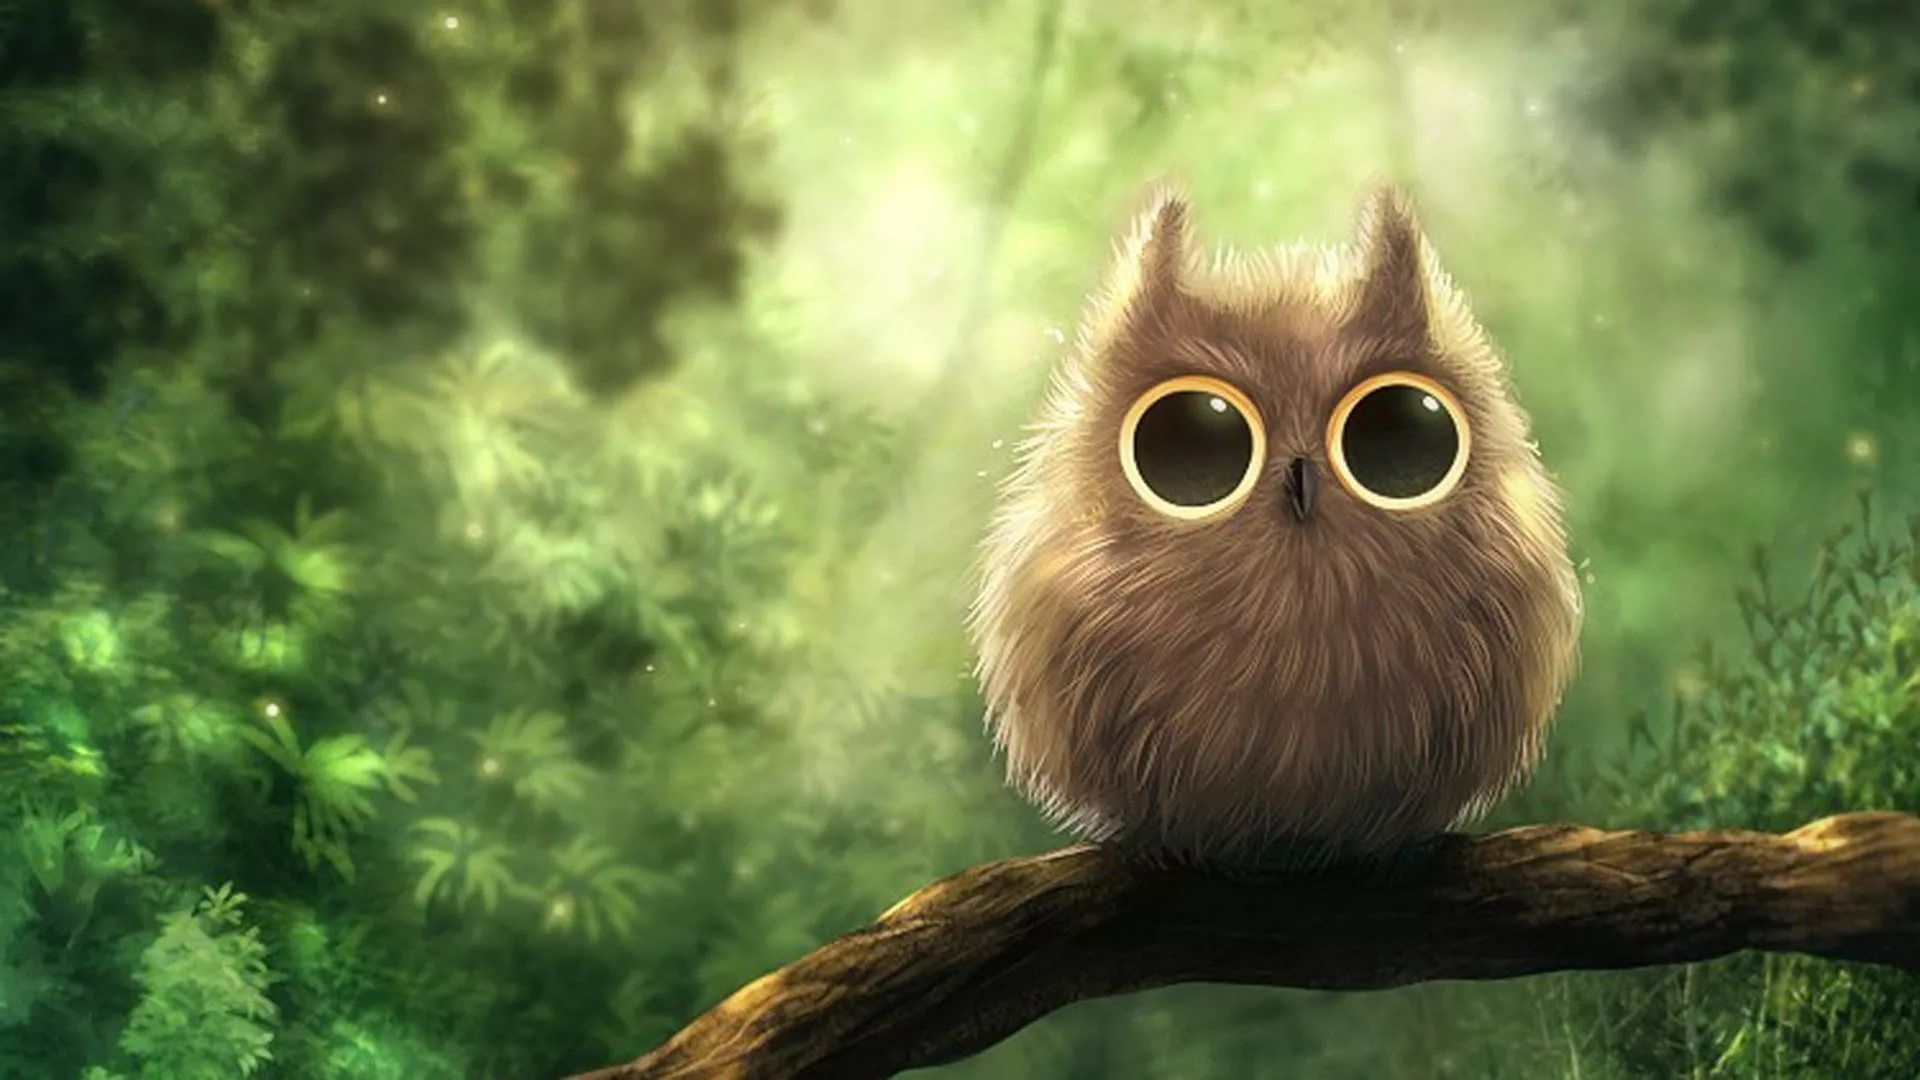 Cute Owl Wallpapers 27 Images Wallpaperboat